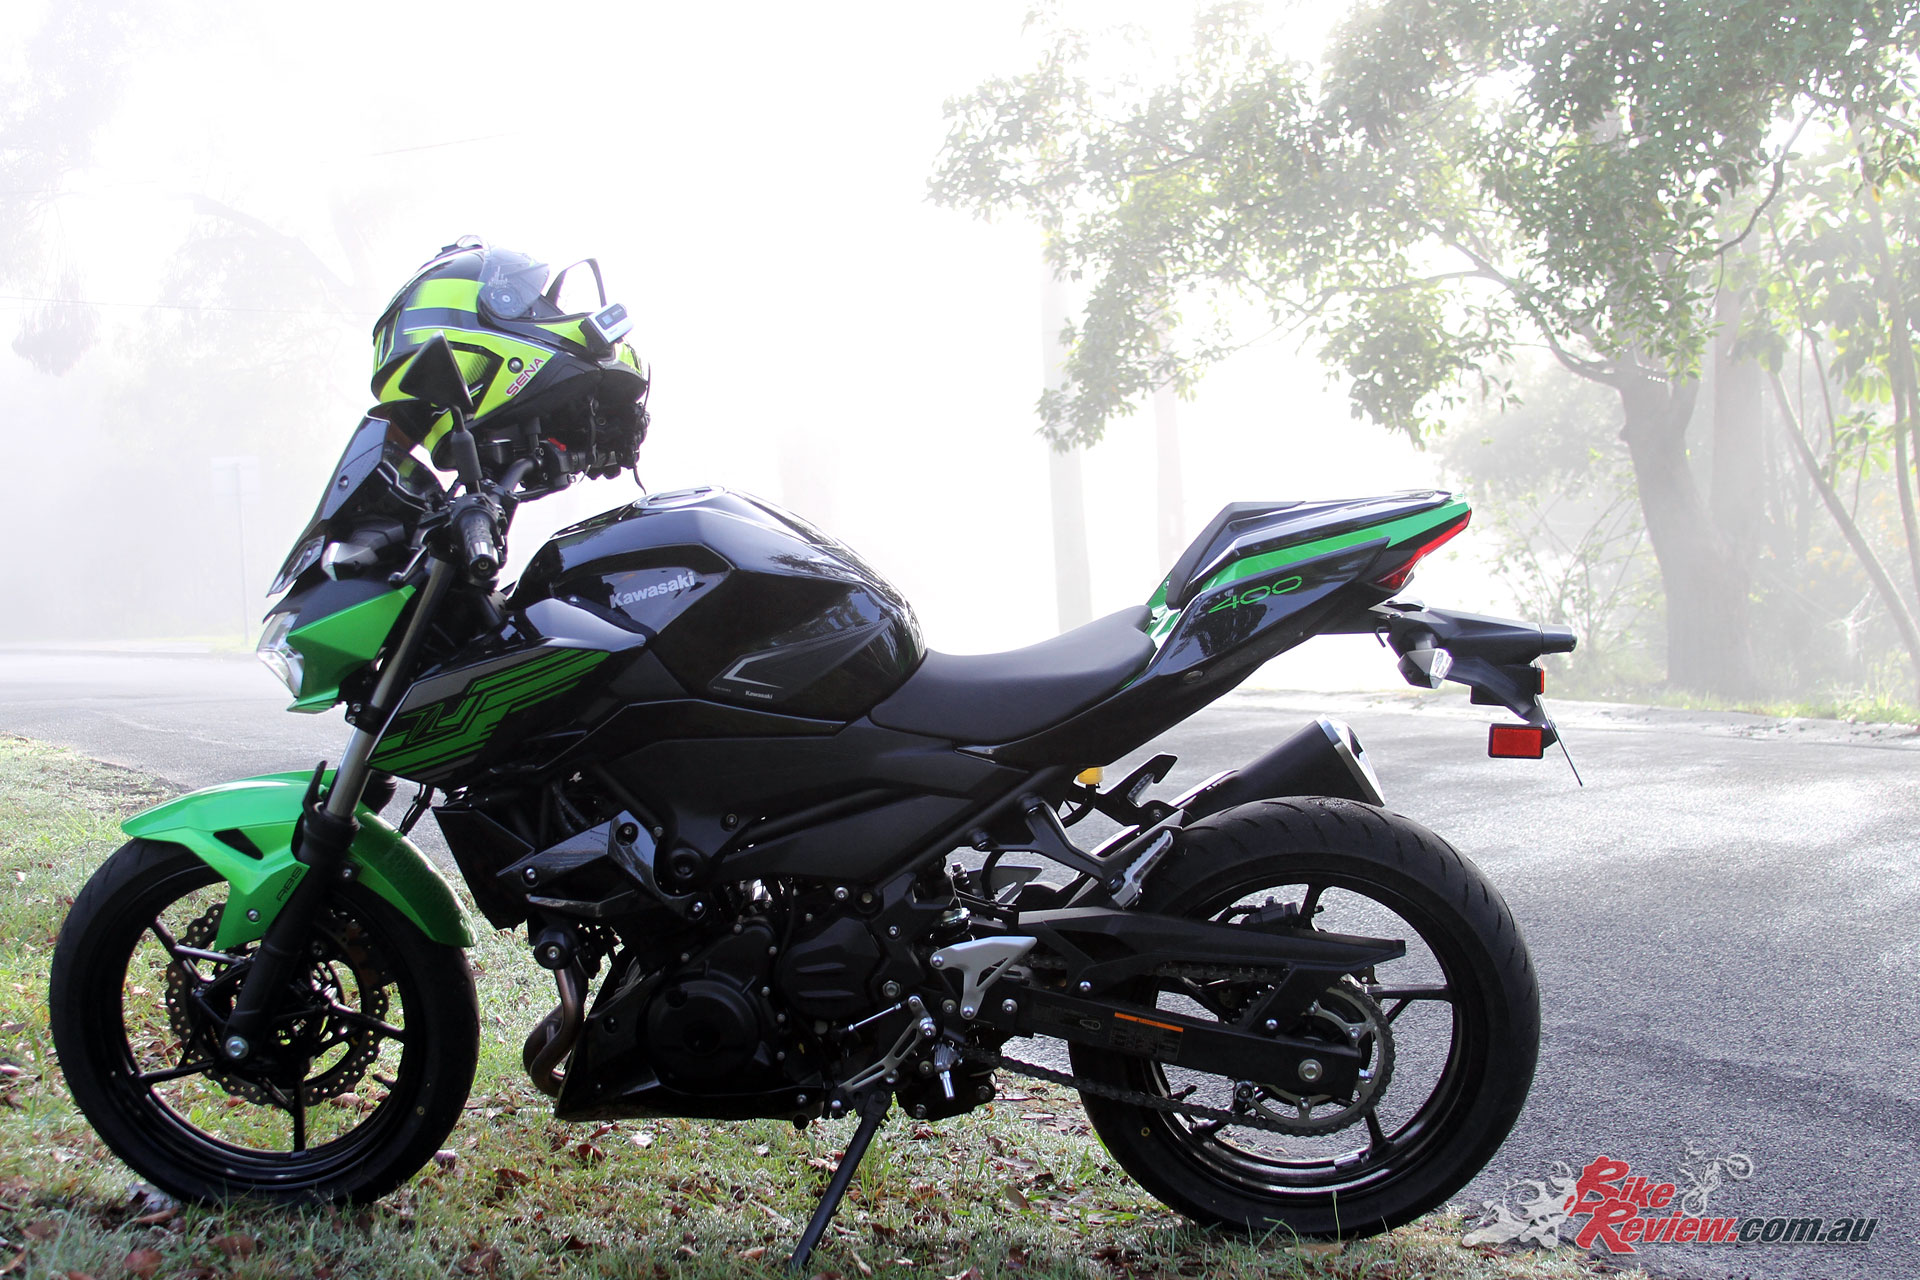 The Z400 also cuts an awesome silhouette, with a top box done on styling